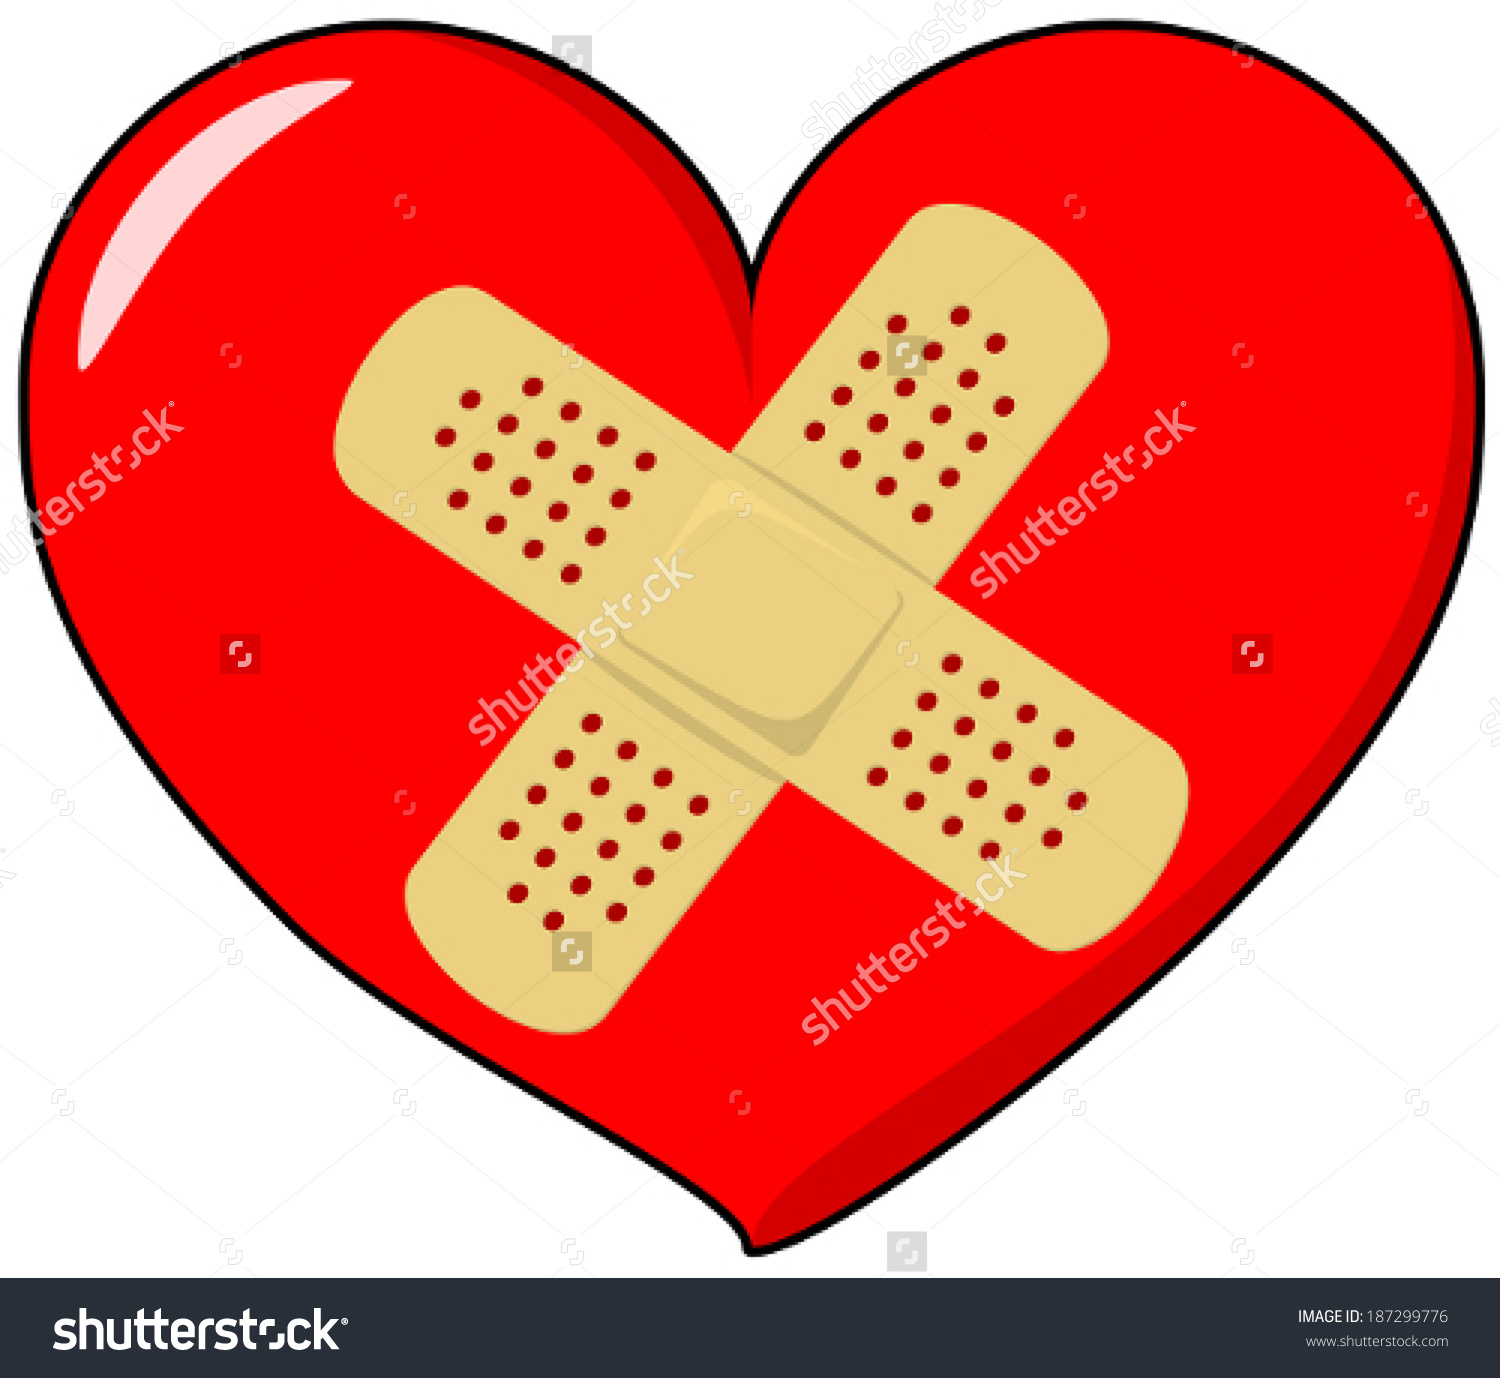 Vector Drawing Heart Band Aid Stock Vector 187299776.